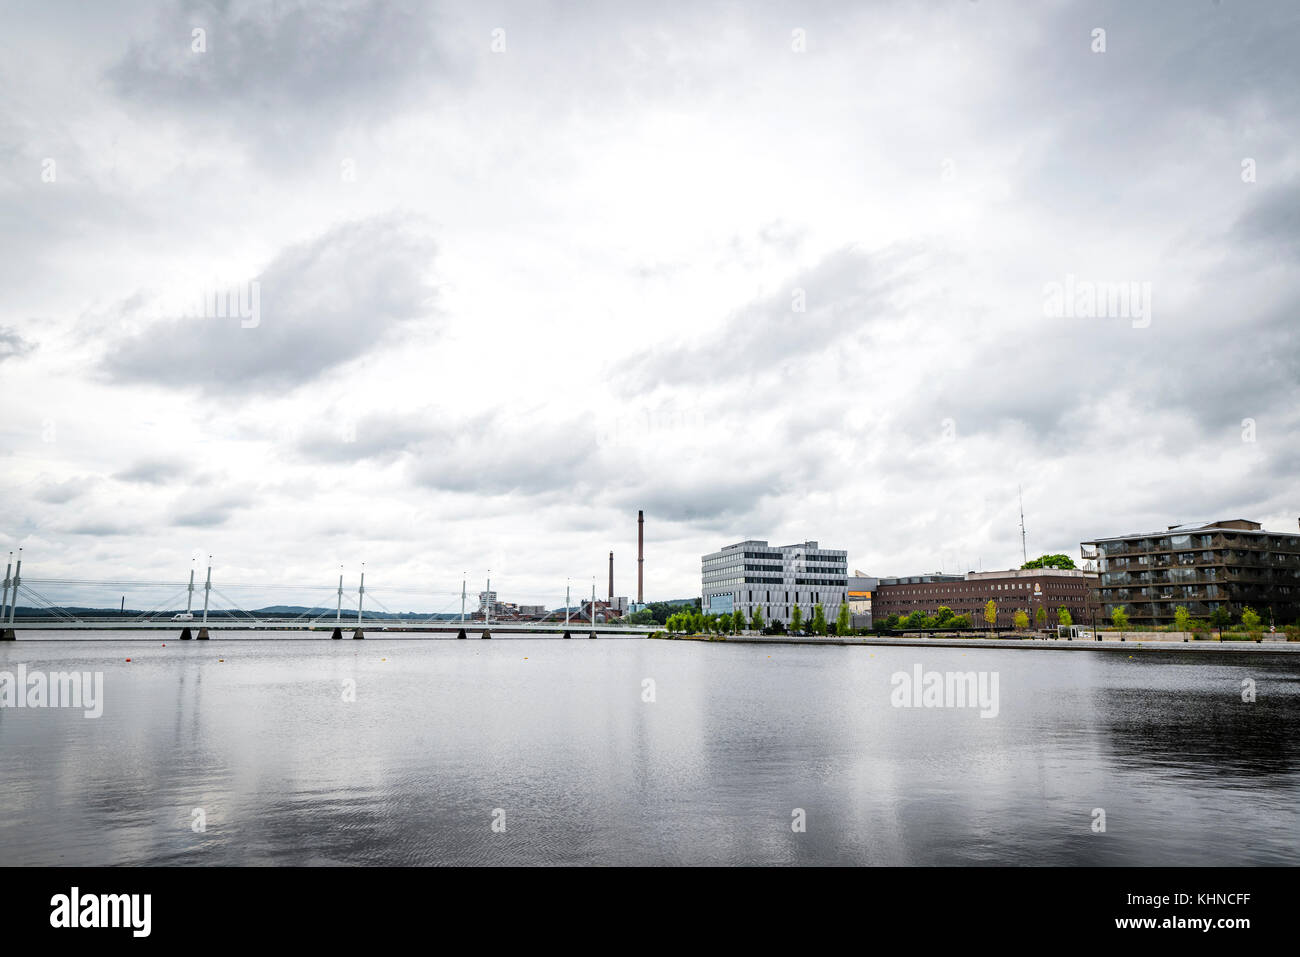 Cityscape with a bridge and appartments in Jönköping a larger swedish city - Stock Image